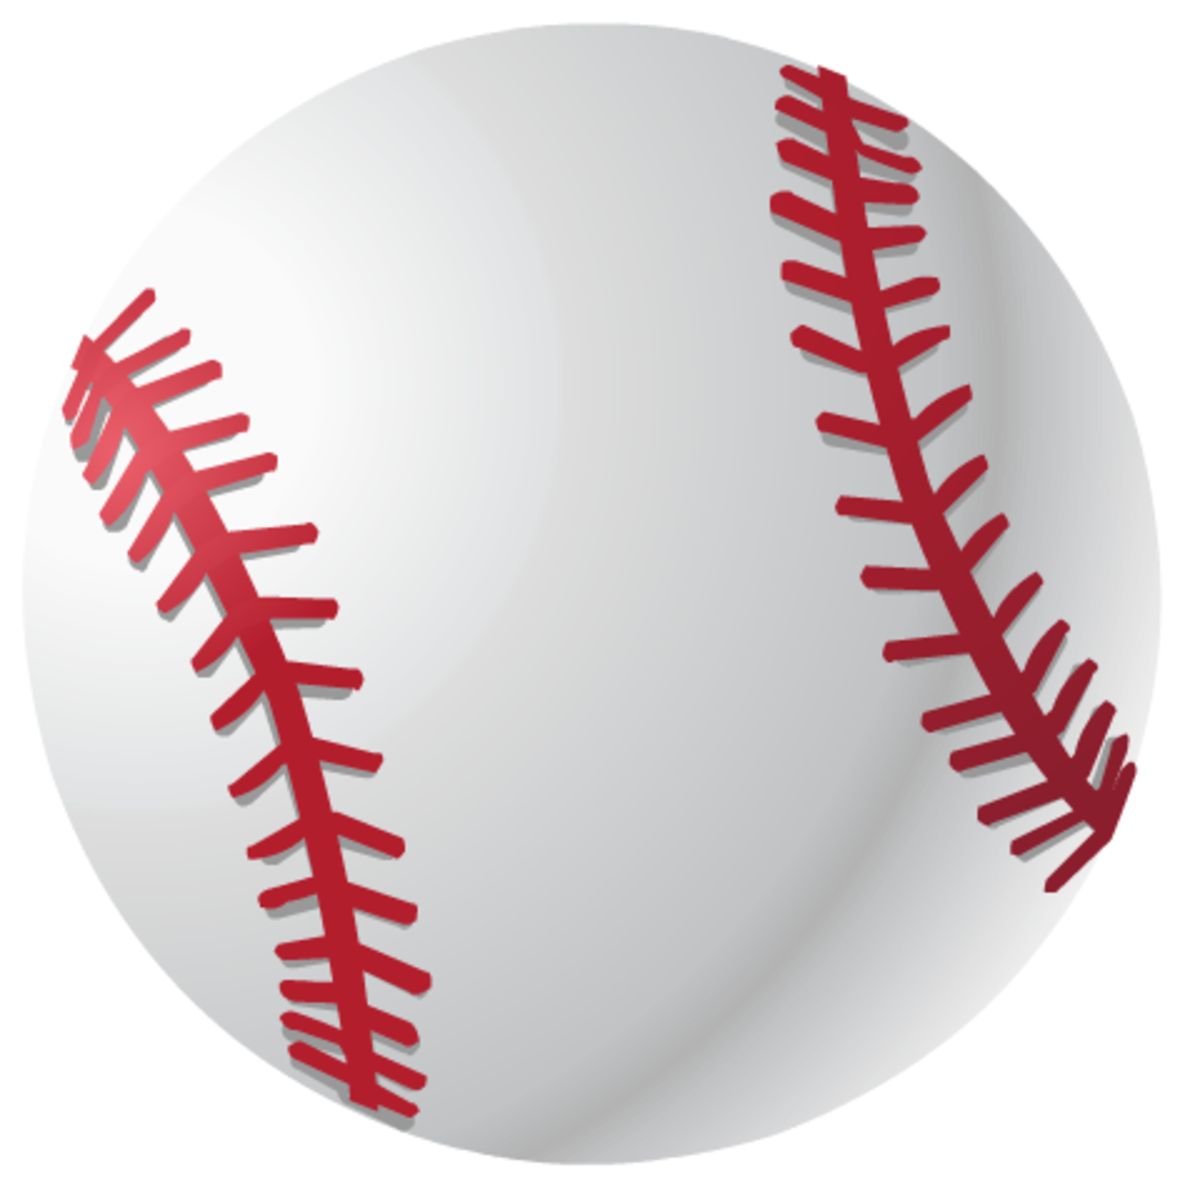 Free baseball clip art: baseball